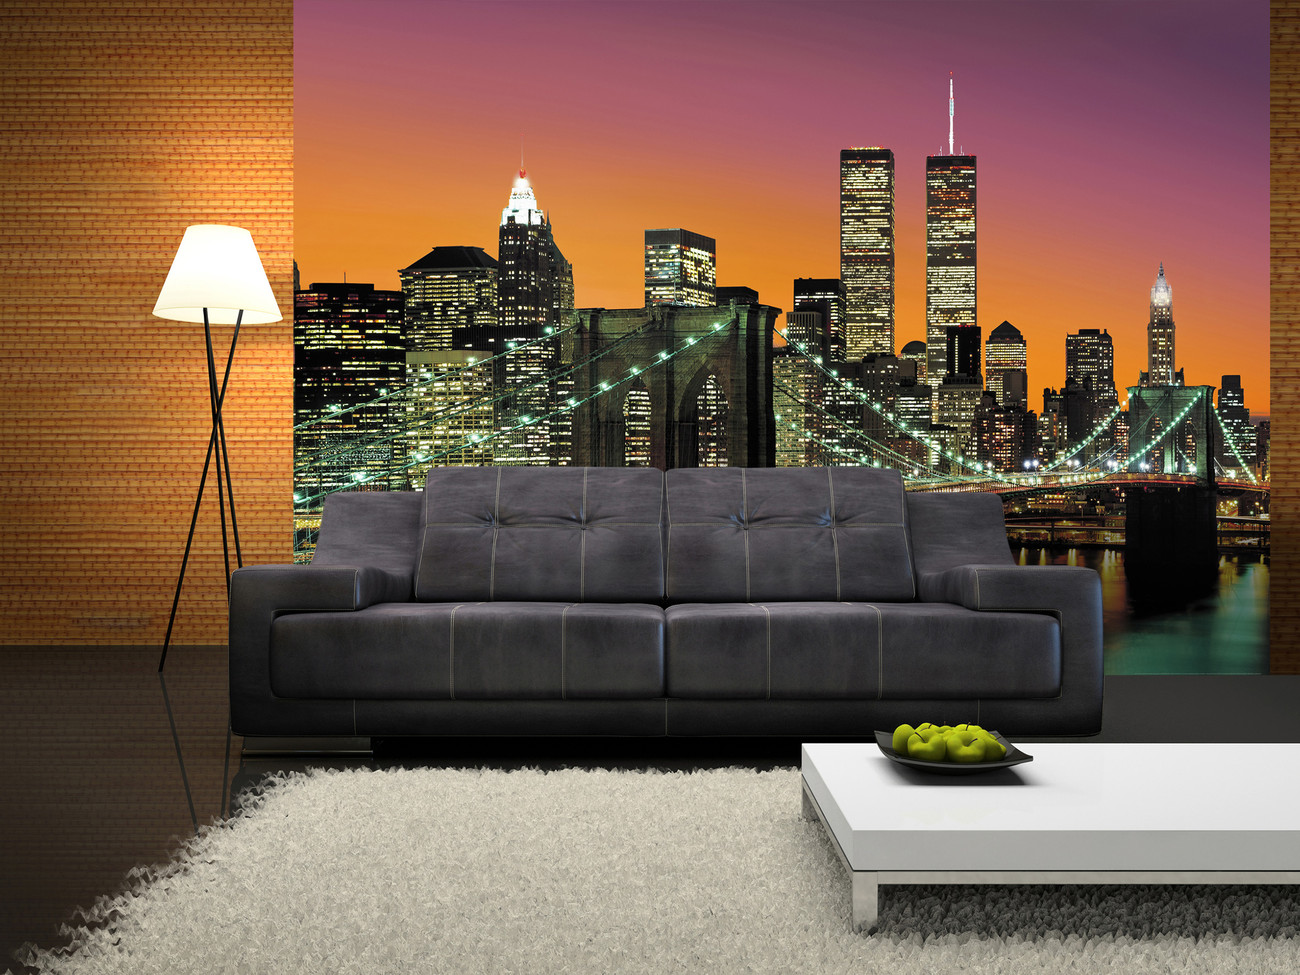 New york city wall mural buy at europosters for Poster mural new york